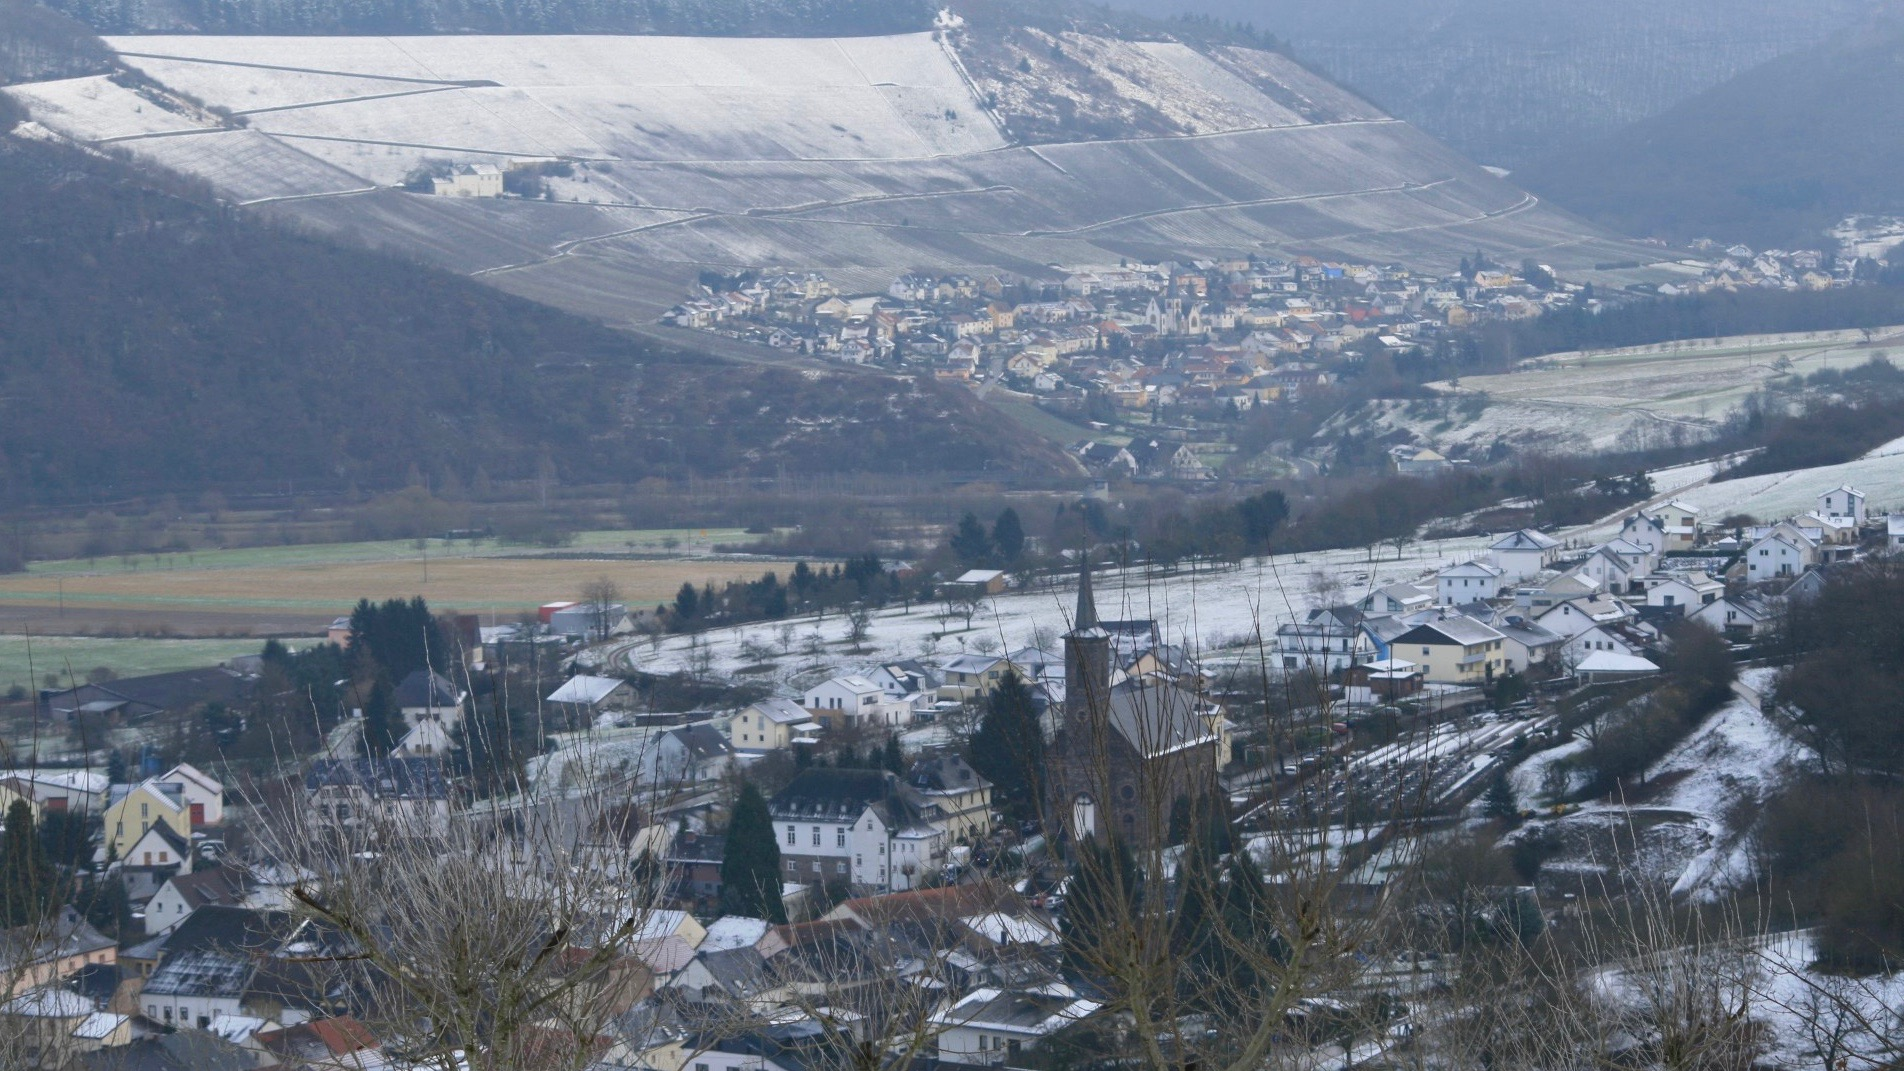 View of a town covered with snow